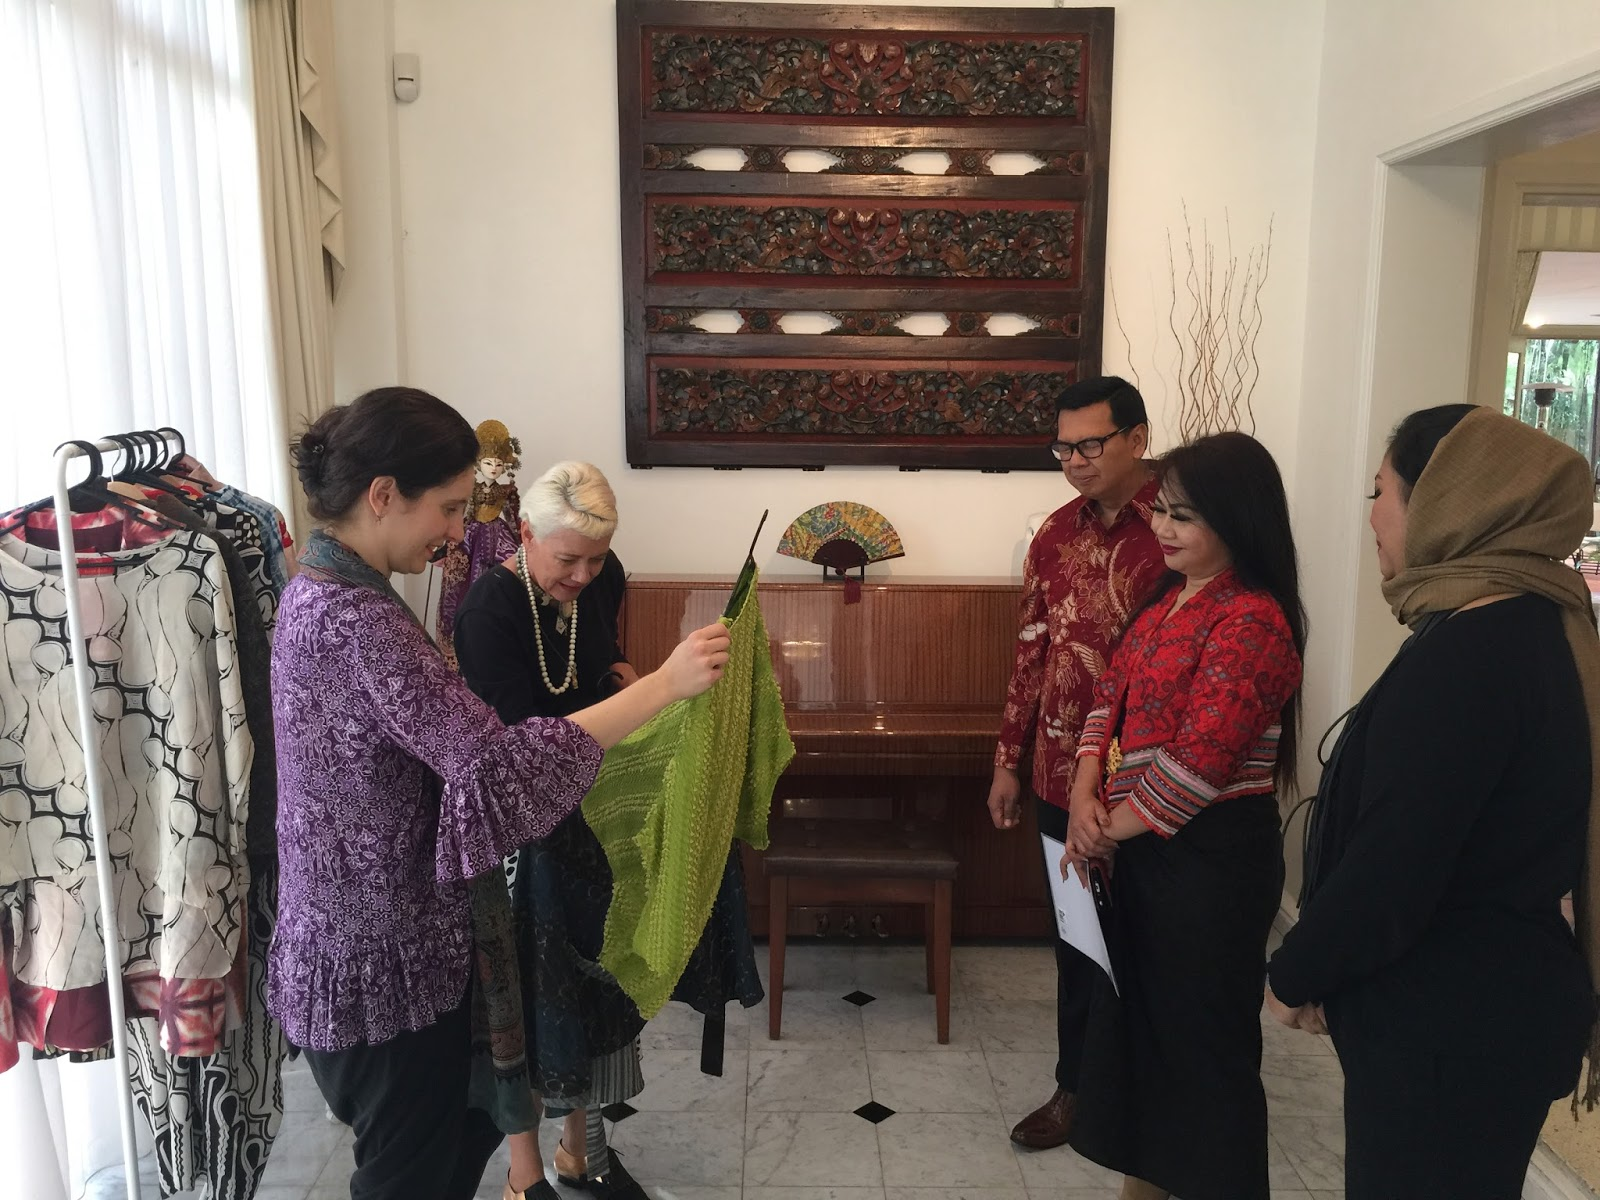 Lydia Pearson and Carla Van Lunn were impressed with the quality of Batik Chic s apparels